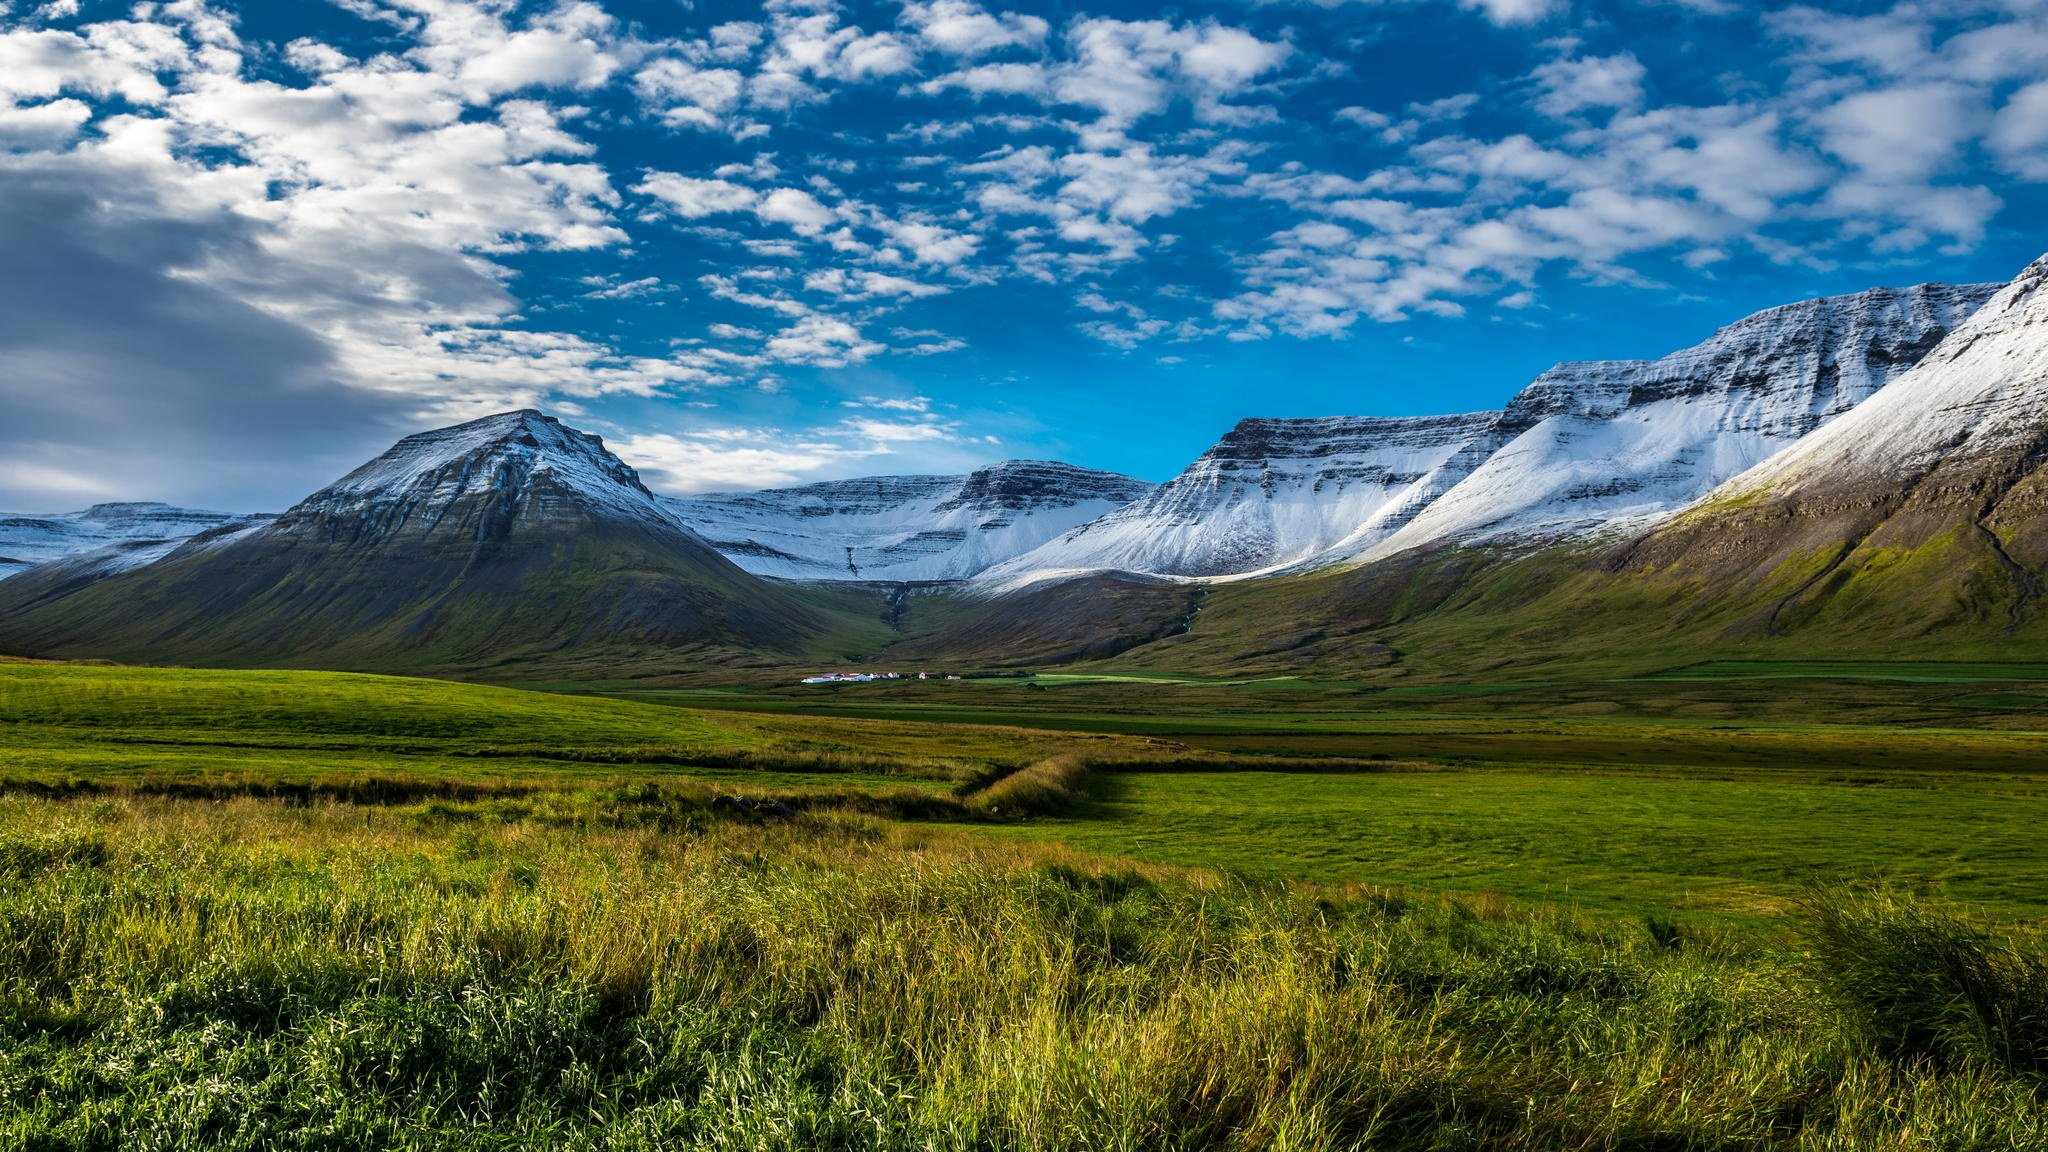 Iceland Scenery Wallpaper Clouds Iceland Wallpaper 2048x1152